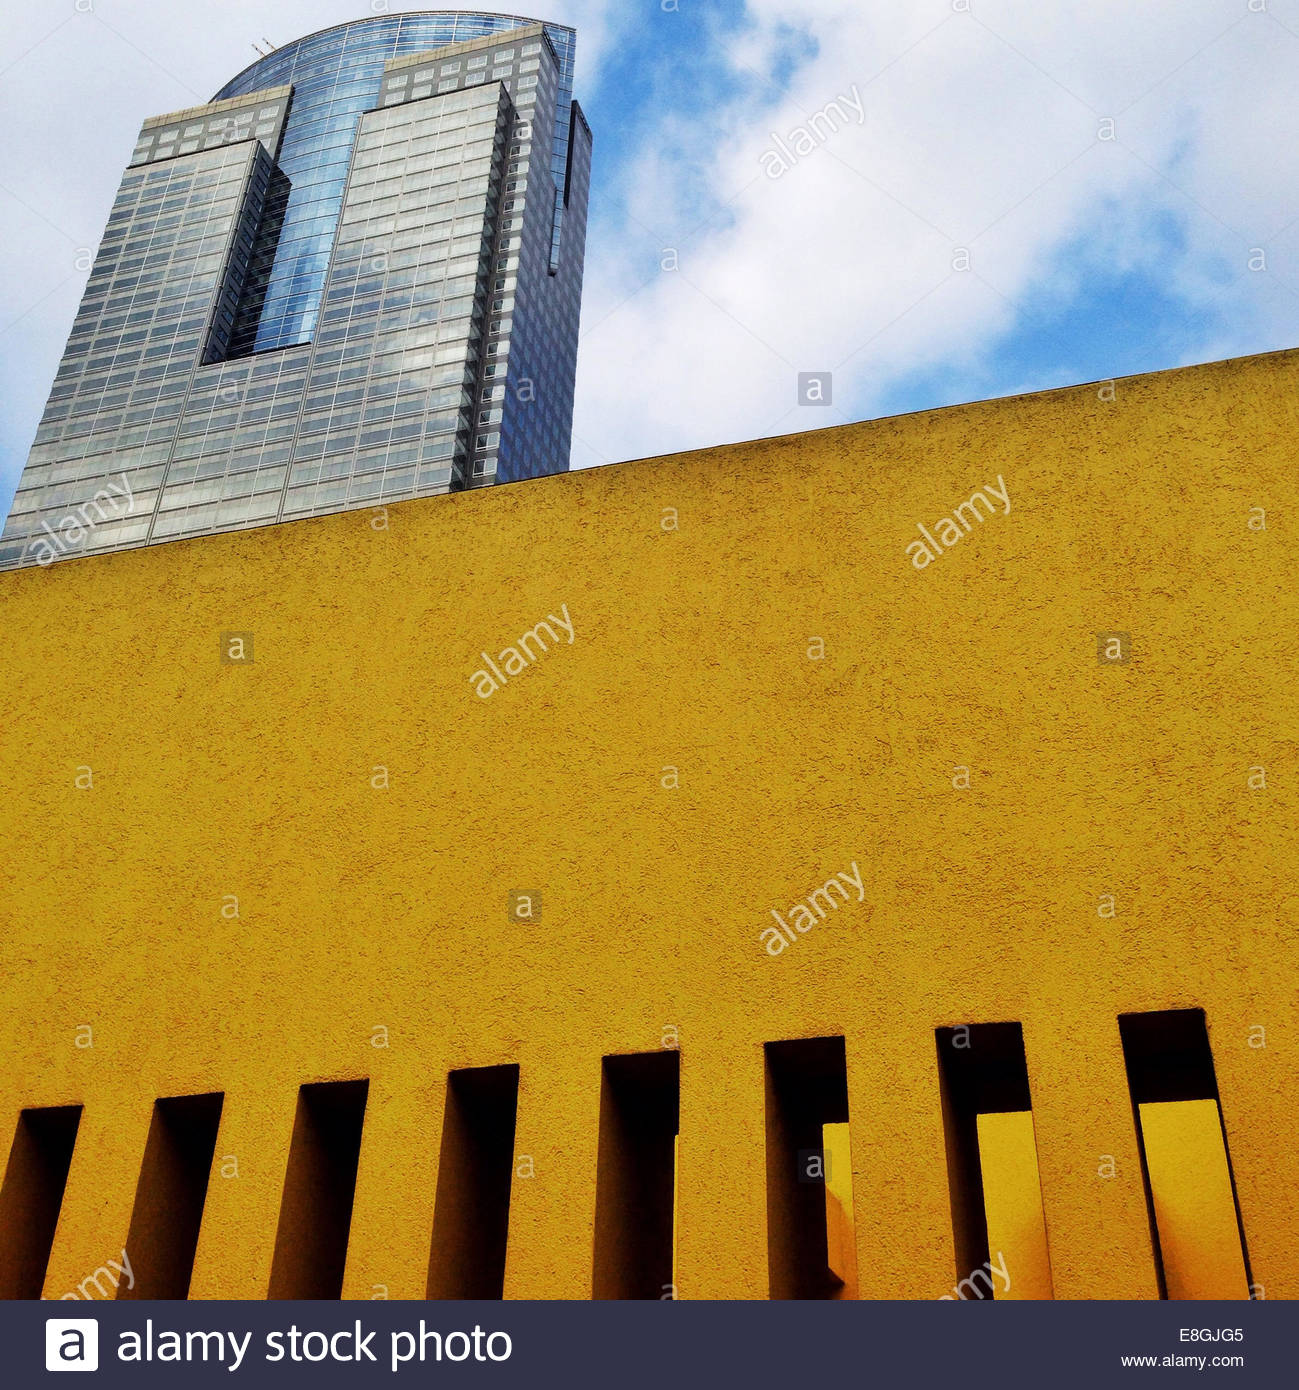 Upward view of yellow wall by tower - Stock Image